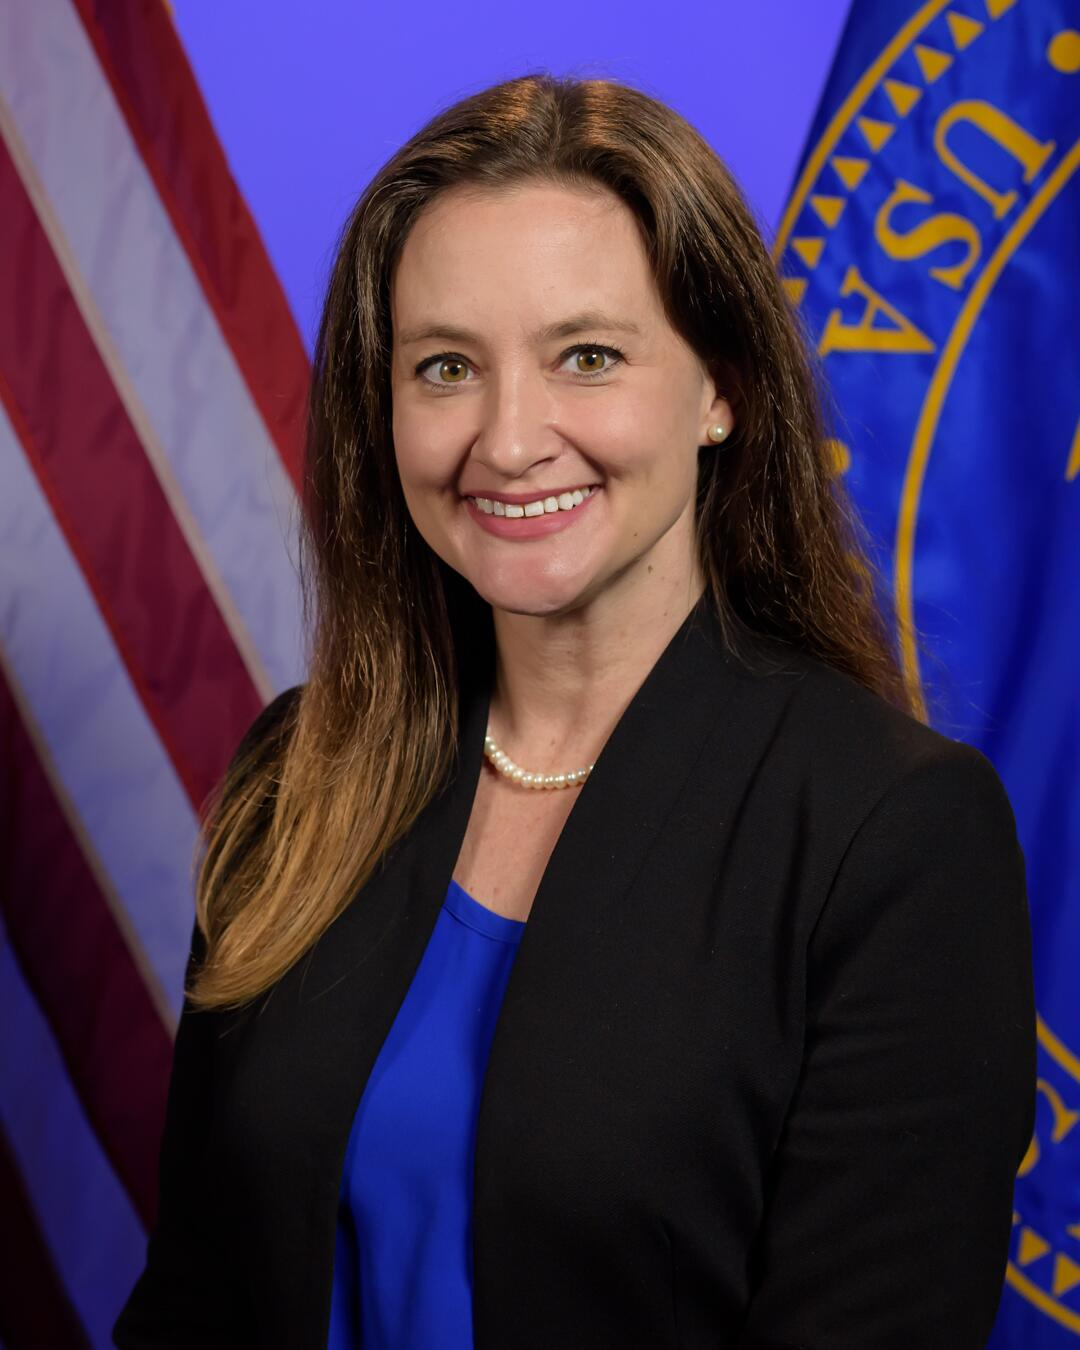 Photo of Natasha Coulouris, Associate Administrator for the Office of Regional Operations